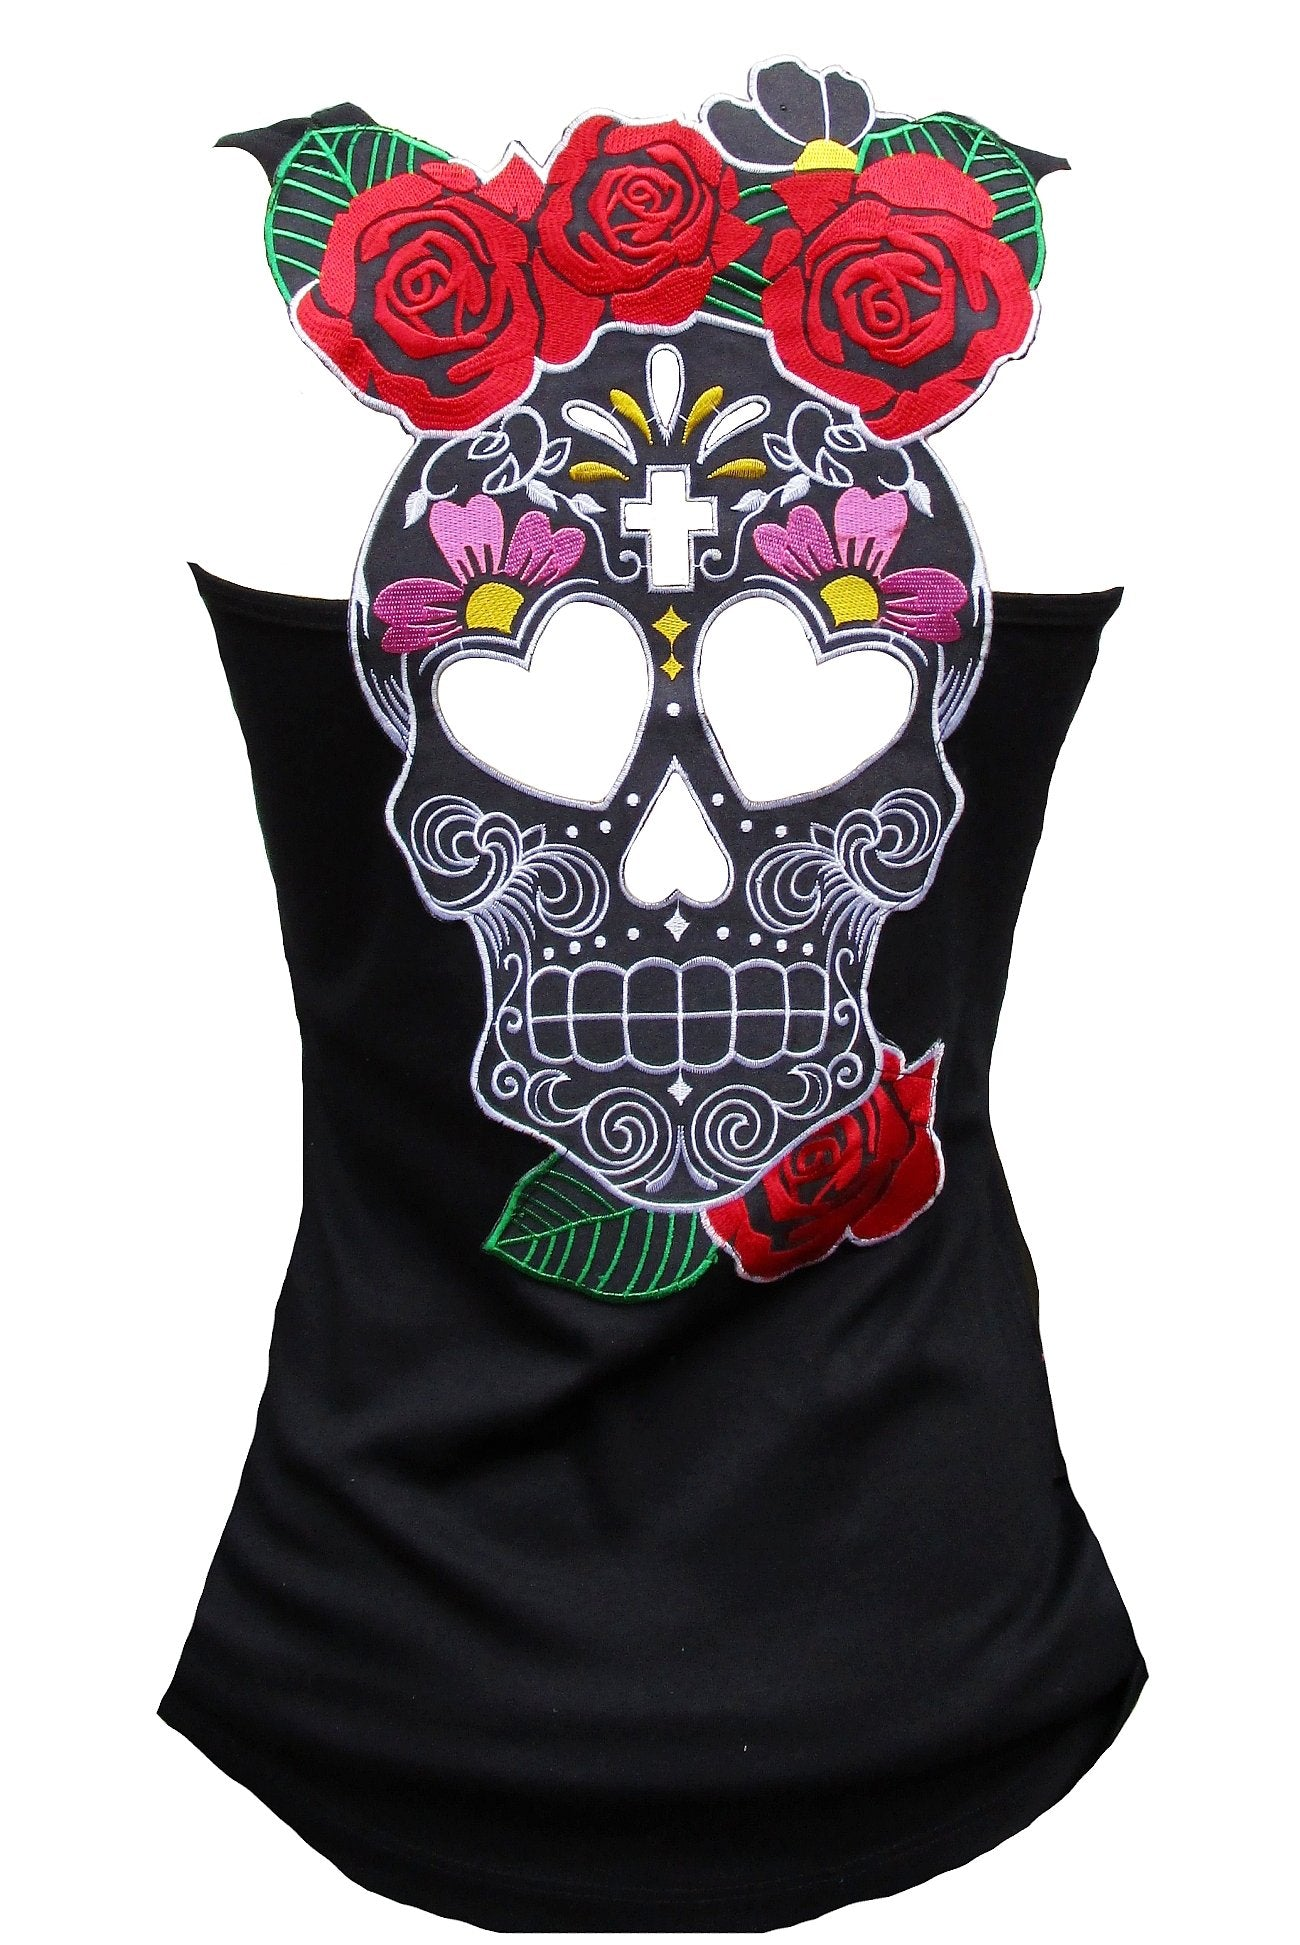 Rockabilly Punk Rock Baby Woman Black Tank Top Shirt Muerte Flower Tiki Skull